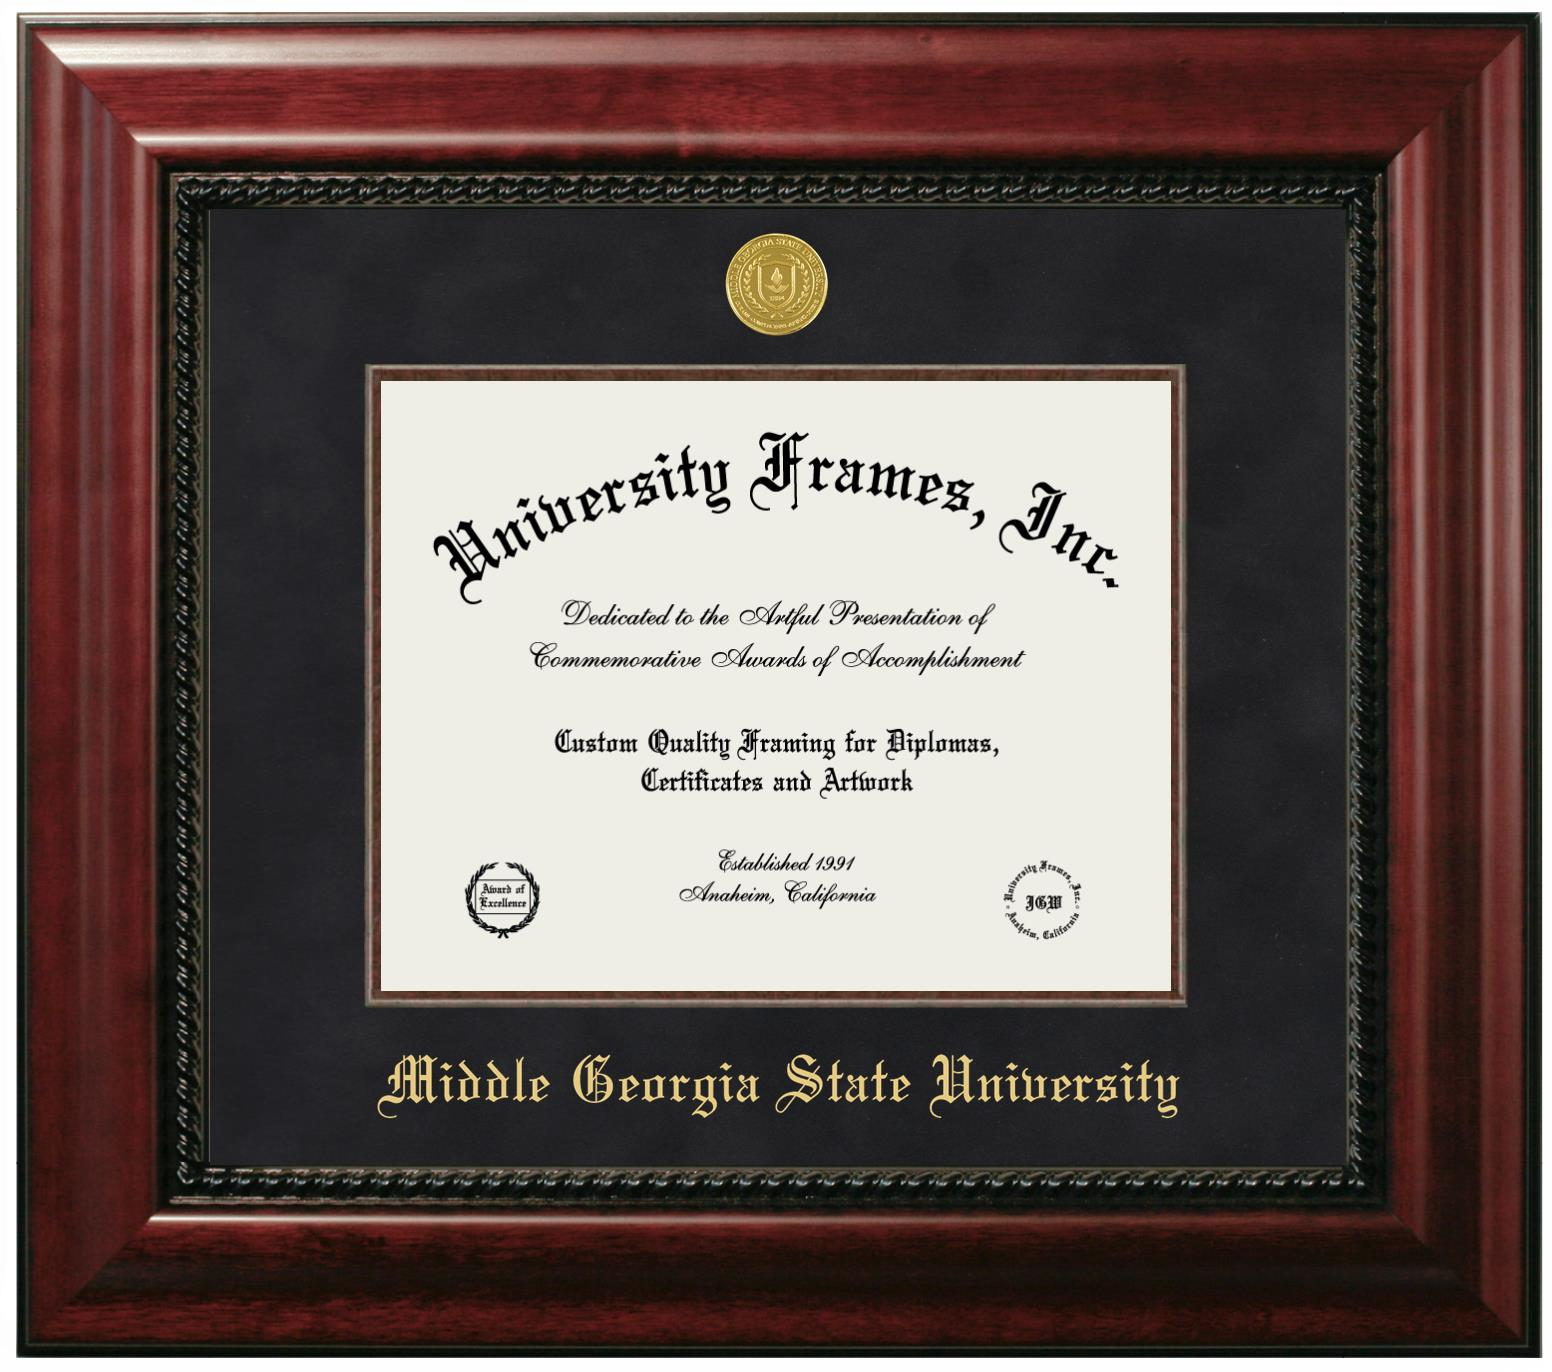 Middle Georgia State University Diploma Frame In Executive With Gold Fillet With Black Suede Mat